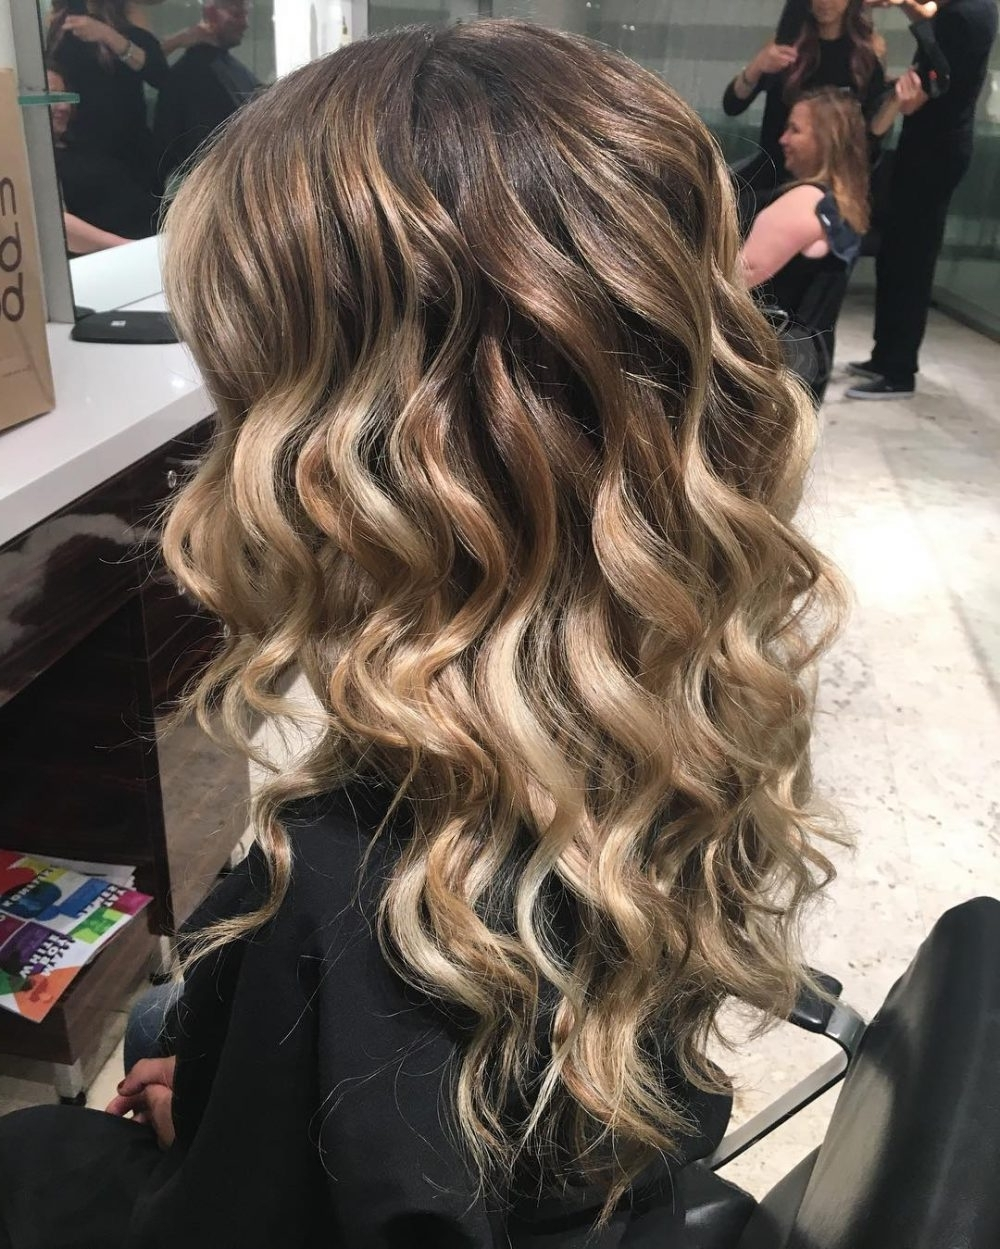 18 Stunning Curly Prom Hairstyles For 2021 Updos, Down Curly Hairstyles For Prom Medium Hair